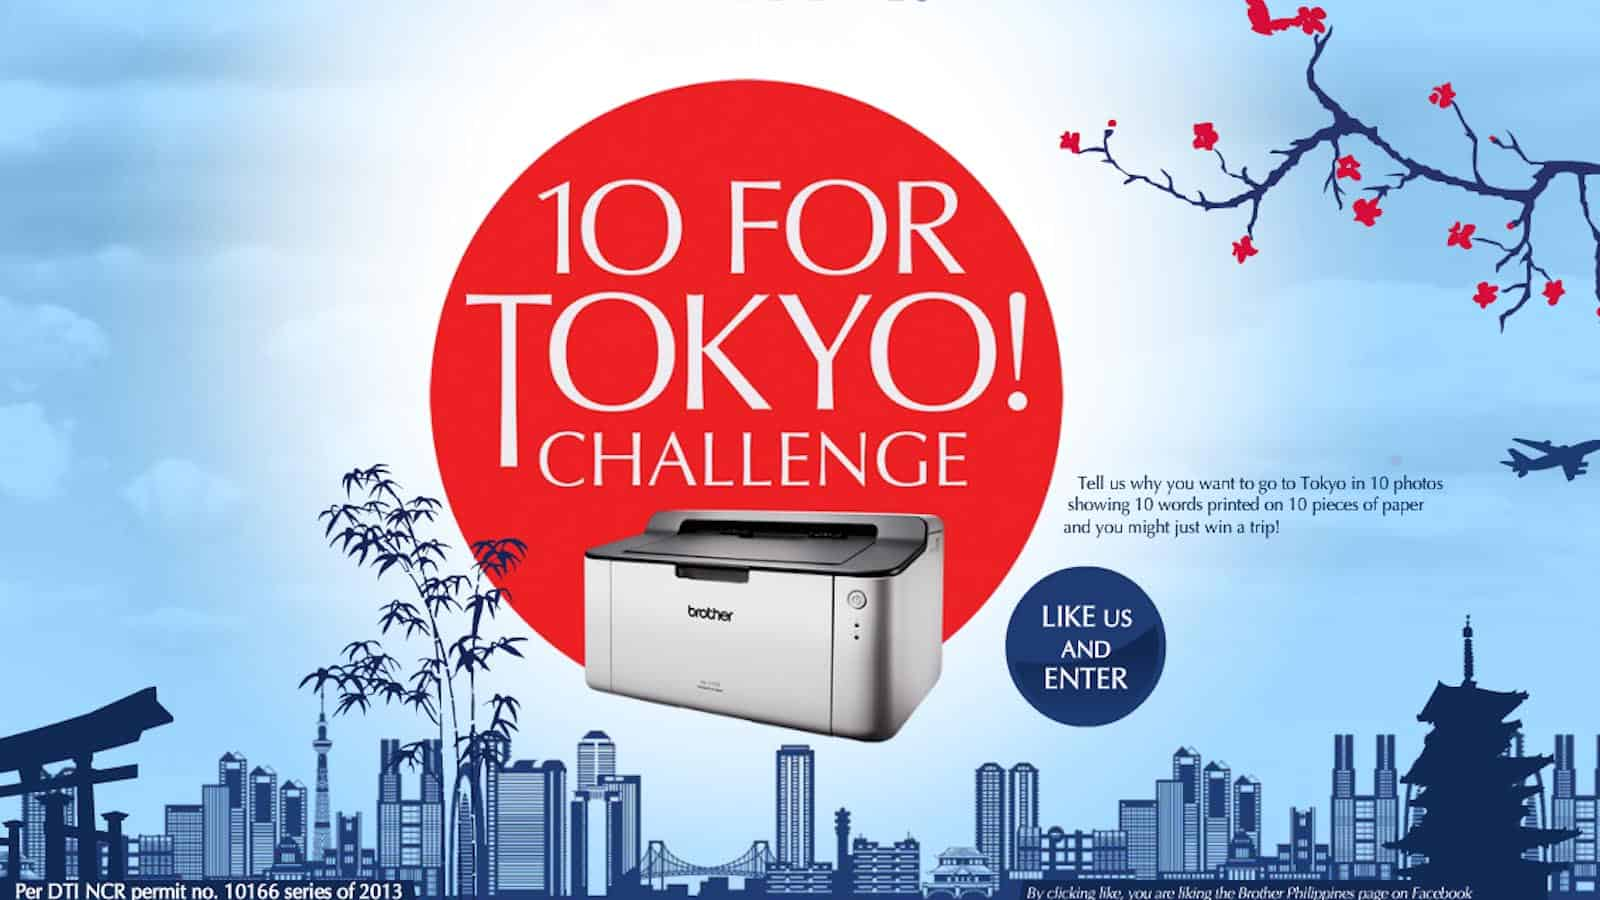 Win a Trip to Japan! Join the Brother '10 for Tokyo' Challenge!